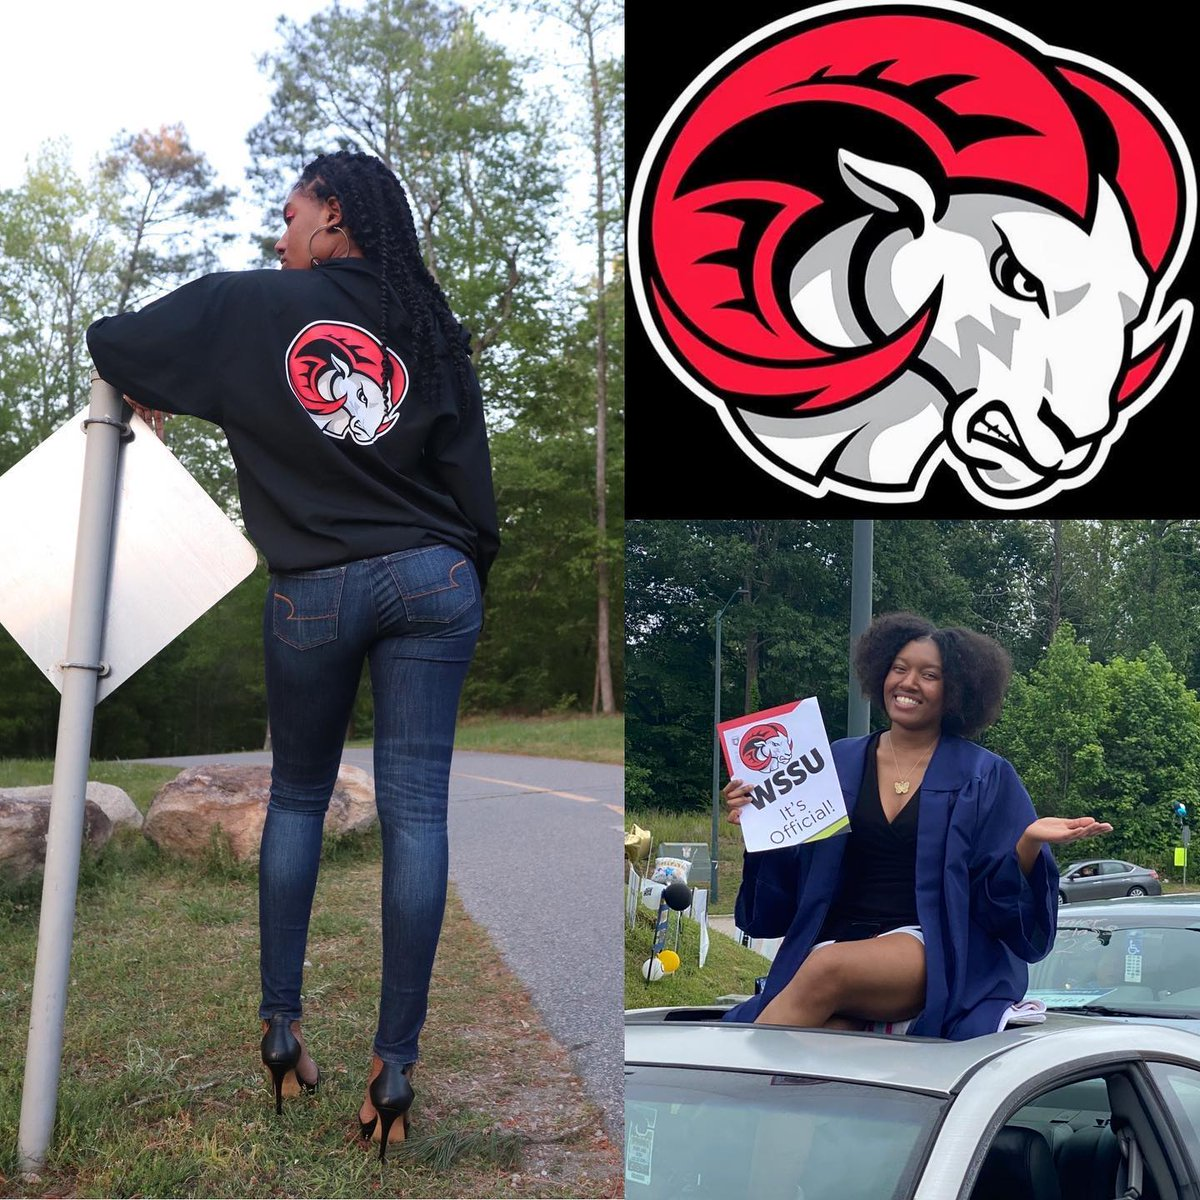 📷 by @kayla_skaii: Closing one Chapter only to Start a New one!!!! Heading to Winston Salem State University Fall 2020!!!! Biology major! Future OBGYN!!!! 🐏 Family!!! @wssu1892 =#wssu24 https://t.co/0pnhvMlRts